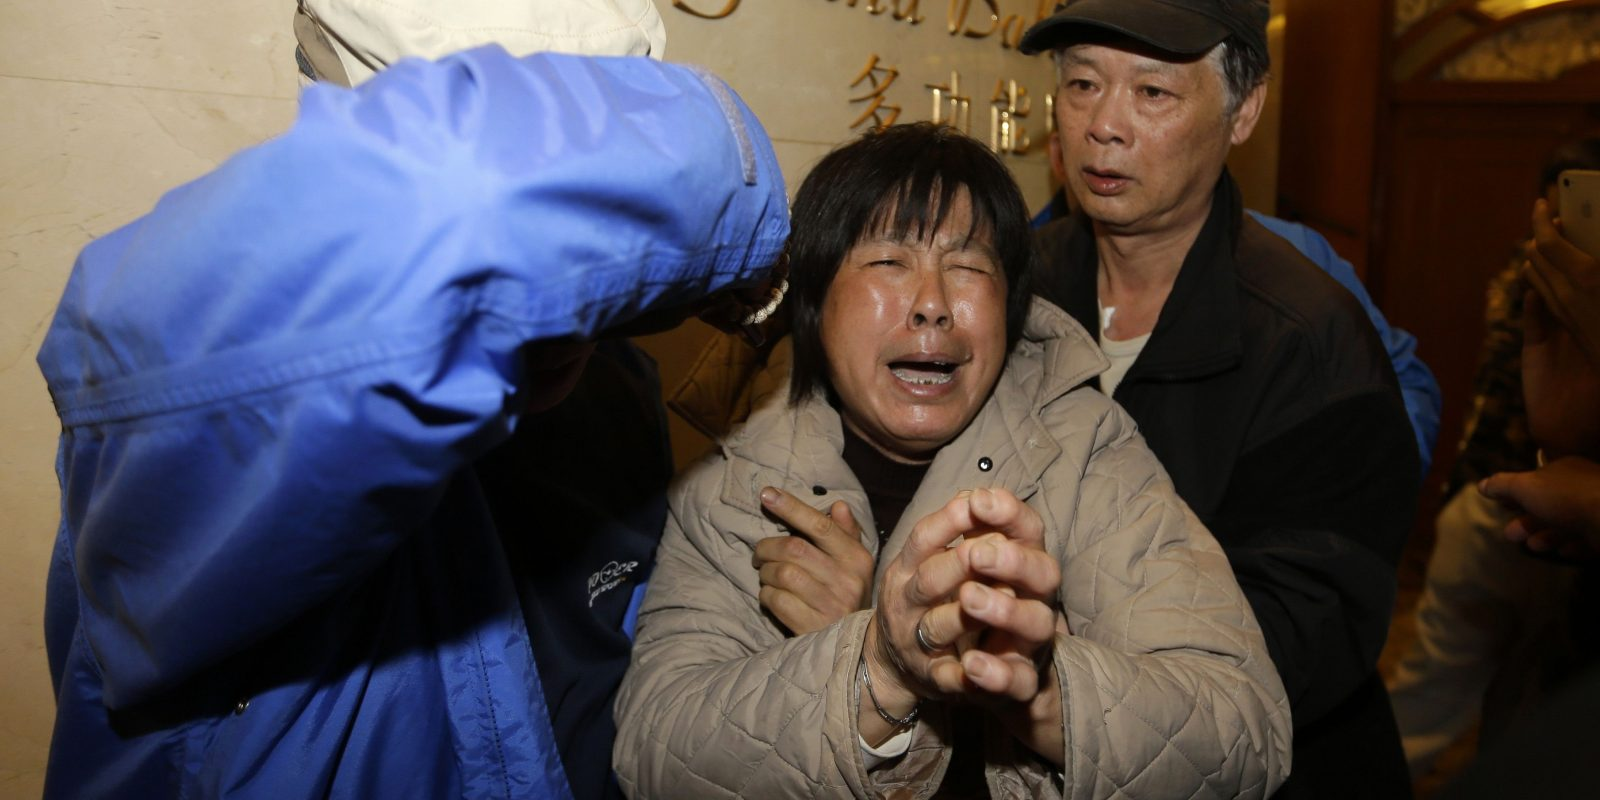 A family member of a passenger aboard Malaysia Airlines MH370 cries after watching a television broadcast of a news conference in Beijing. Imagen Por: A family member of a passenger aboard Malaysia Airlines MH370 cries after watching a television broadcast of a news conference, at the Lido hotel in Beijing March 24, 2014. The Malaysia Airlines plane that disappeared over two weeks ago crashed in the southern Indian Ocean, Prime Minister Najib Razak said on Monday. REUTERS/Jason Lee (CHINA - Tags: TRANSPORT DISASTER)